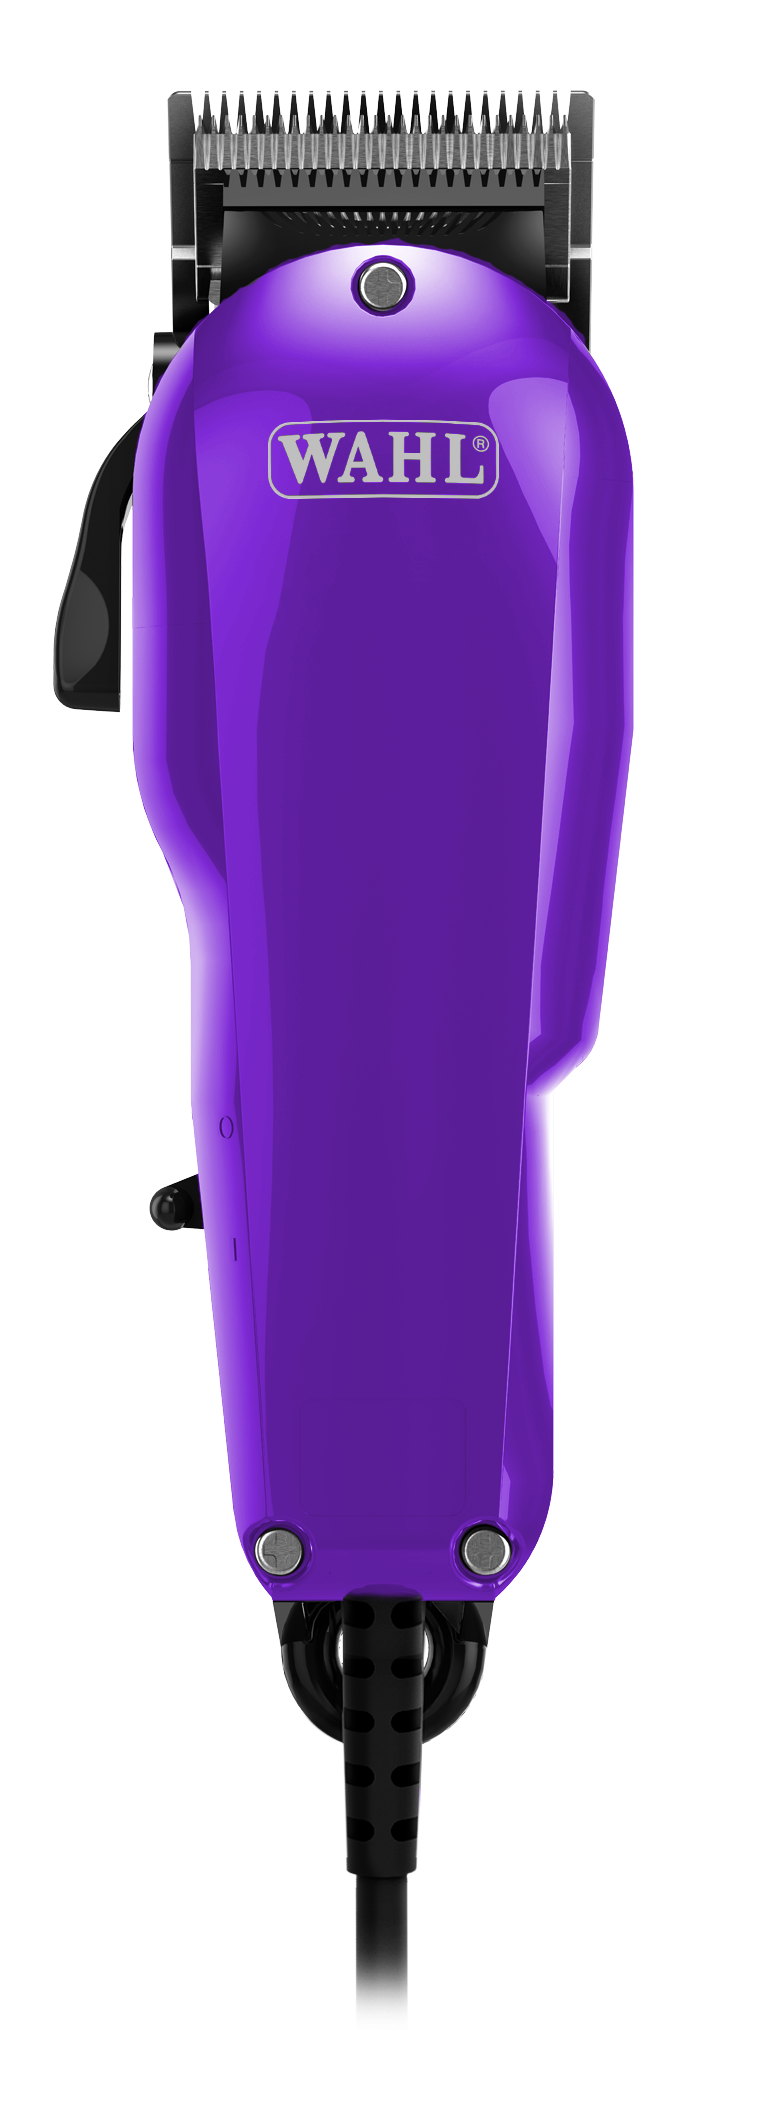 Wahl Taper 2000 Purple Professional Corded Hair Clippers - WA8472-PU (Purple)